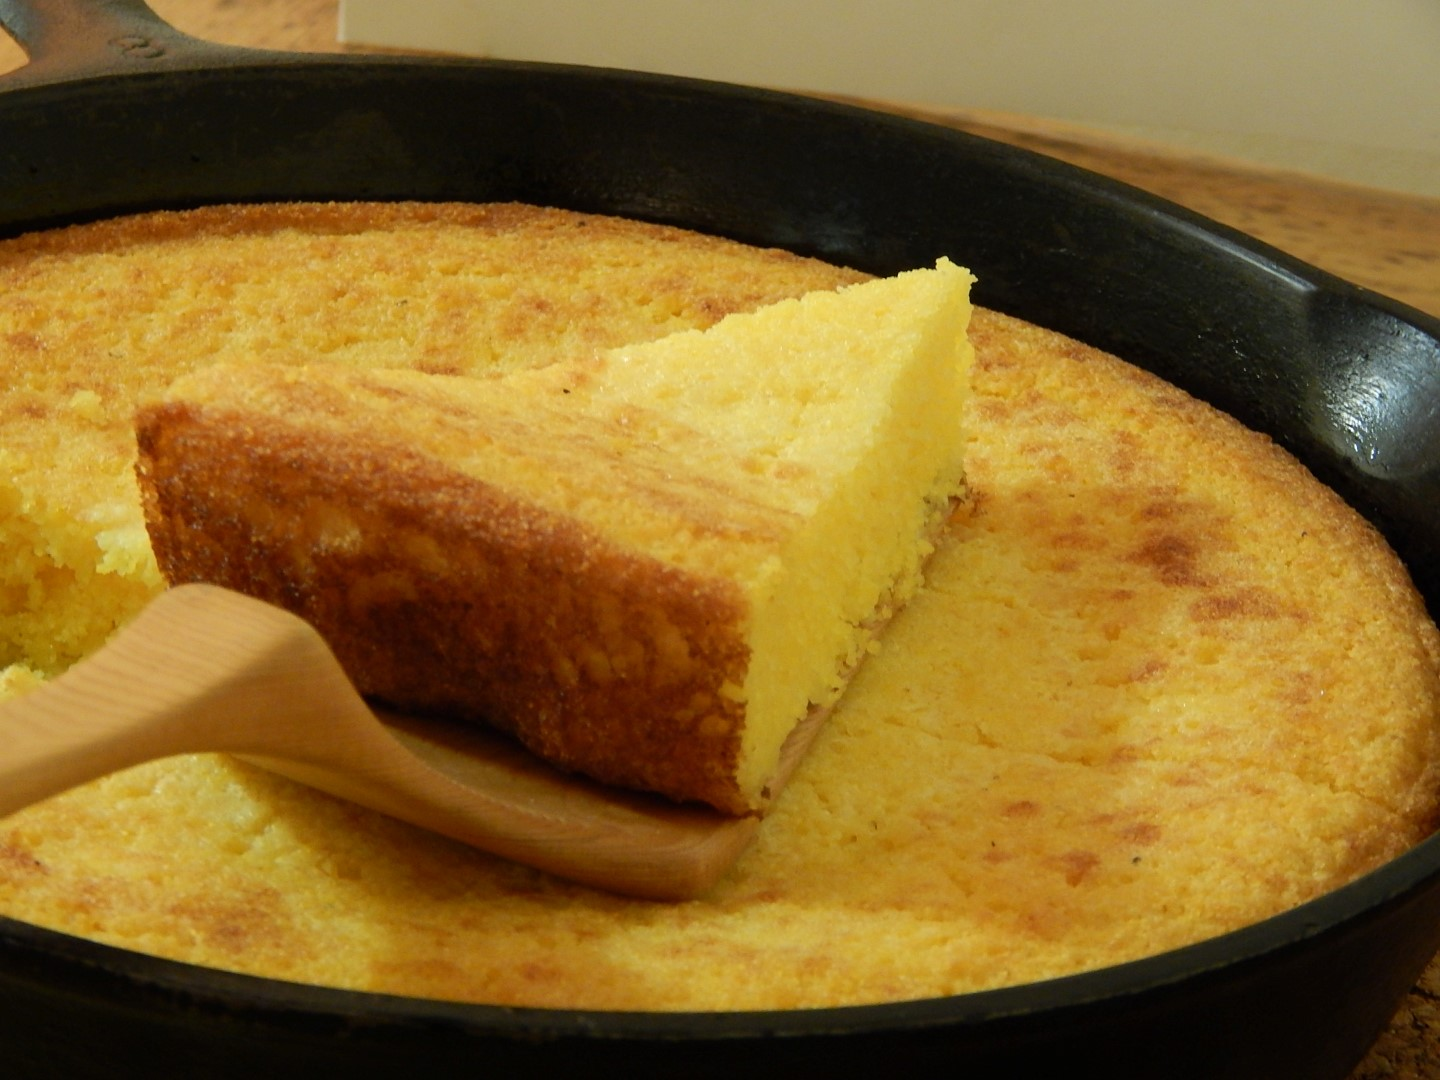 Corn bread in a cast iron skillet.